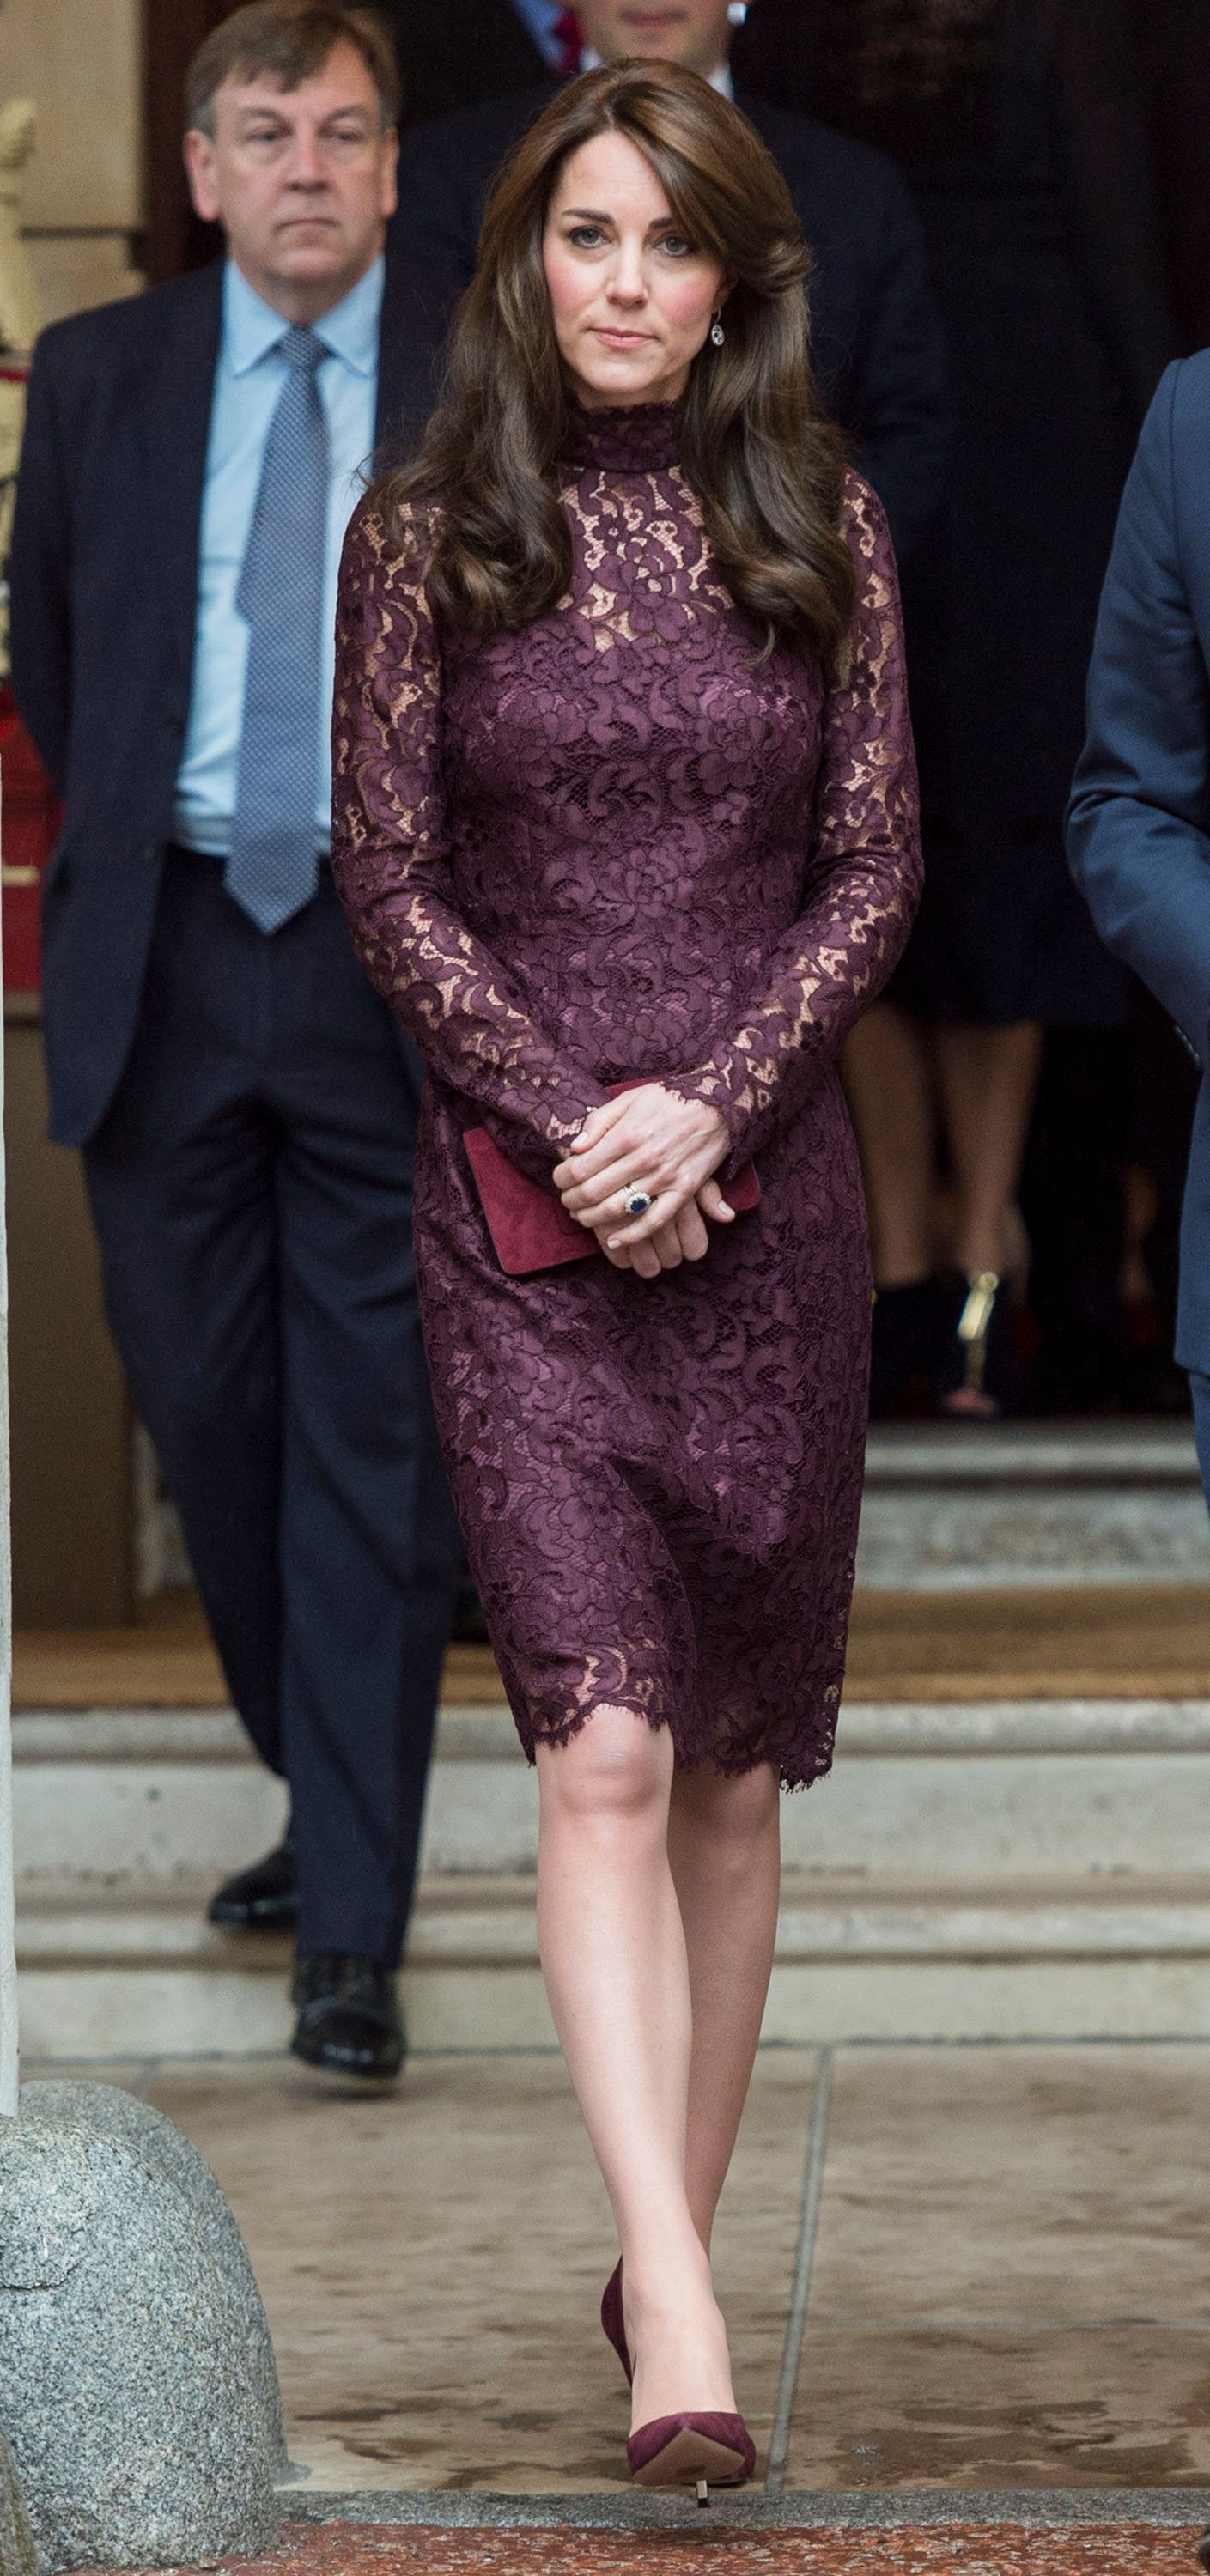 LONDON, ENGLAND - OCTOBER 21:  Catherine, Duchess of Cambridge attends 'Creative Collaborations: UK & China' at Lancaster House during the Chinese State Visit on October 21, 2015 in London, England. The President of the Peoples Republic of China, Mr Xi Jinping and his wife, Madame Peng Liyuan, are paying a State Visit to the United Kingdom as guests of The Queen.  (Photo by Mark Cuthbert/UK Press via Getty Images)